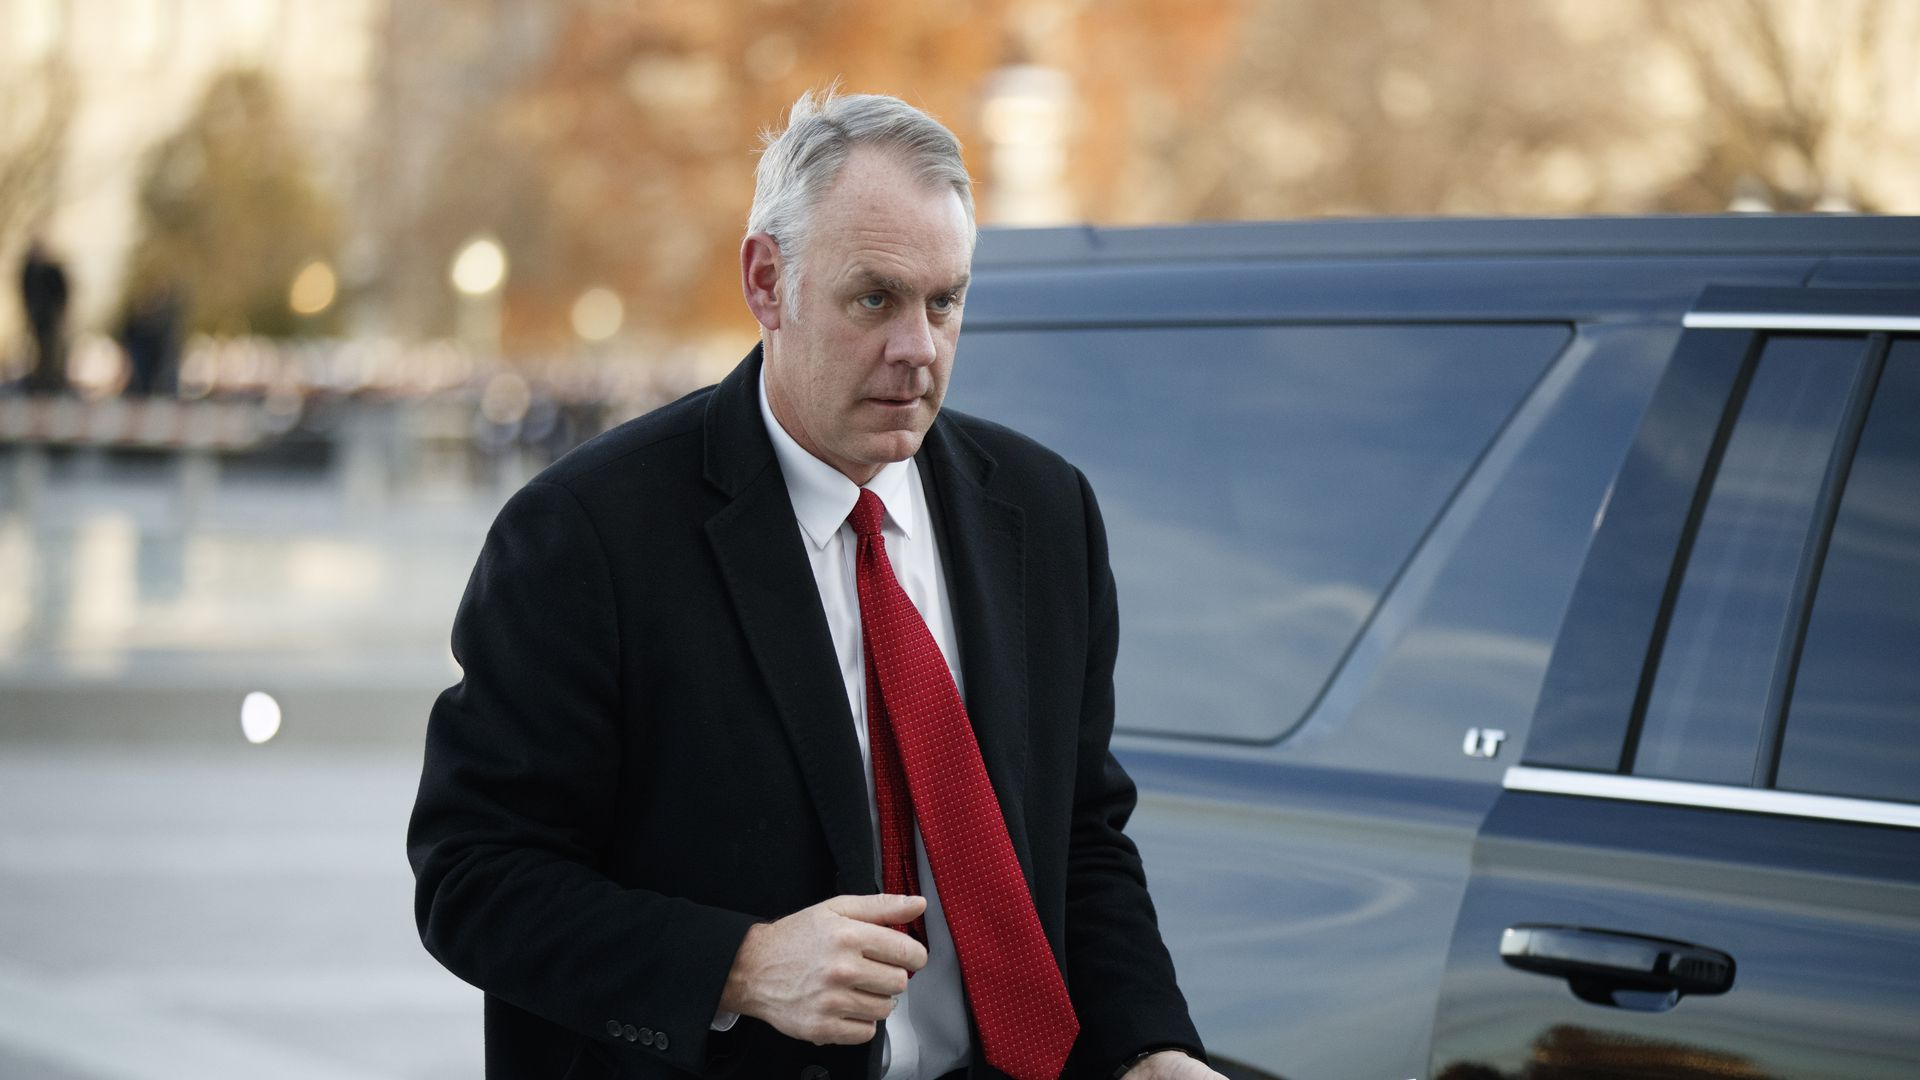 In this image, Ryan Zinke walks out of a black SUV with a red tie.